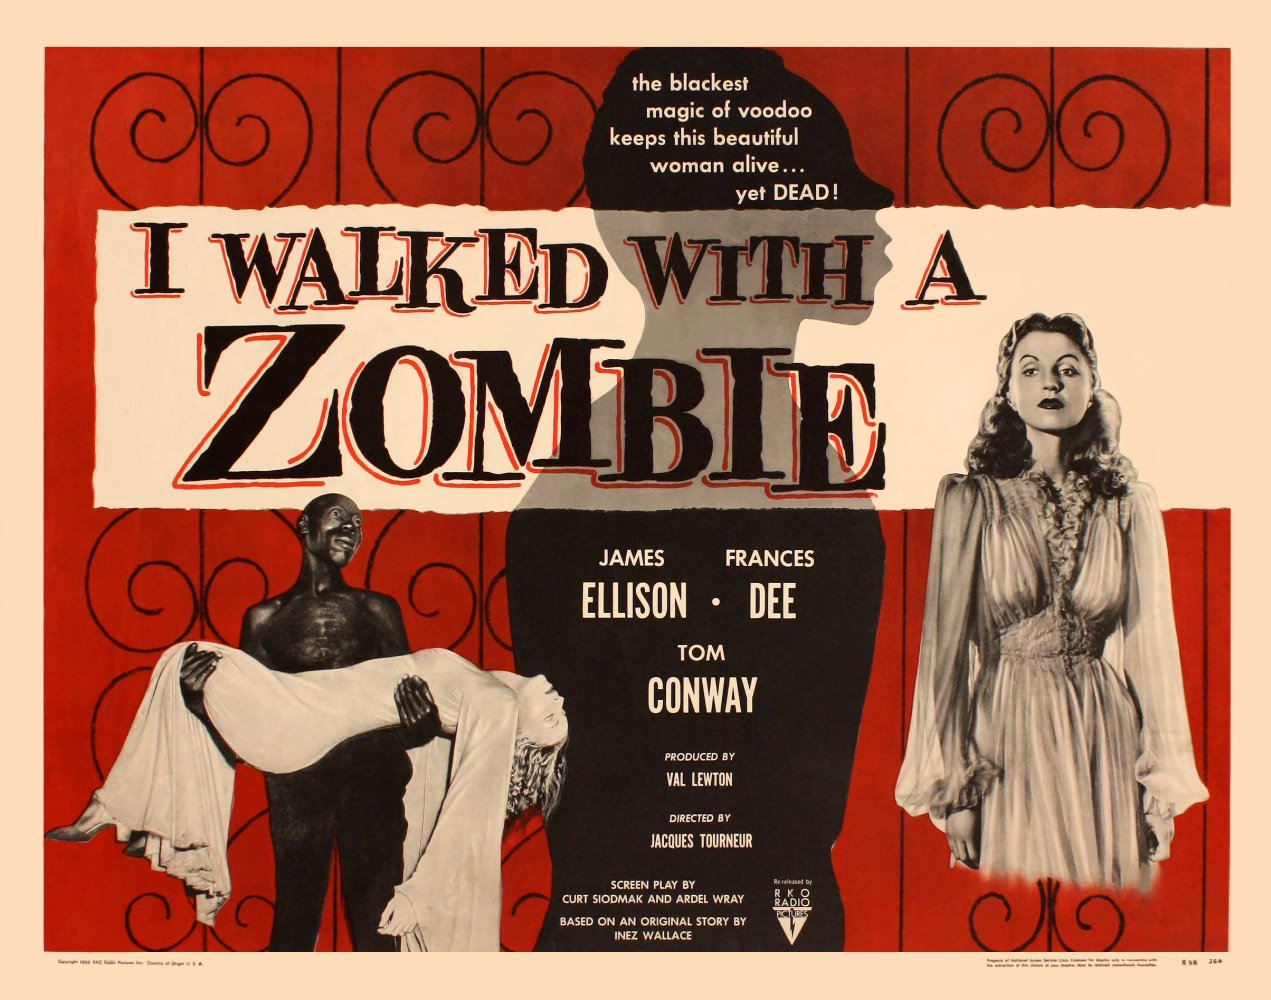 I Walked with a Zombie